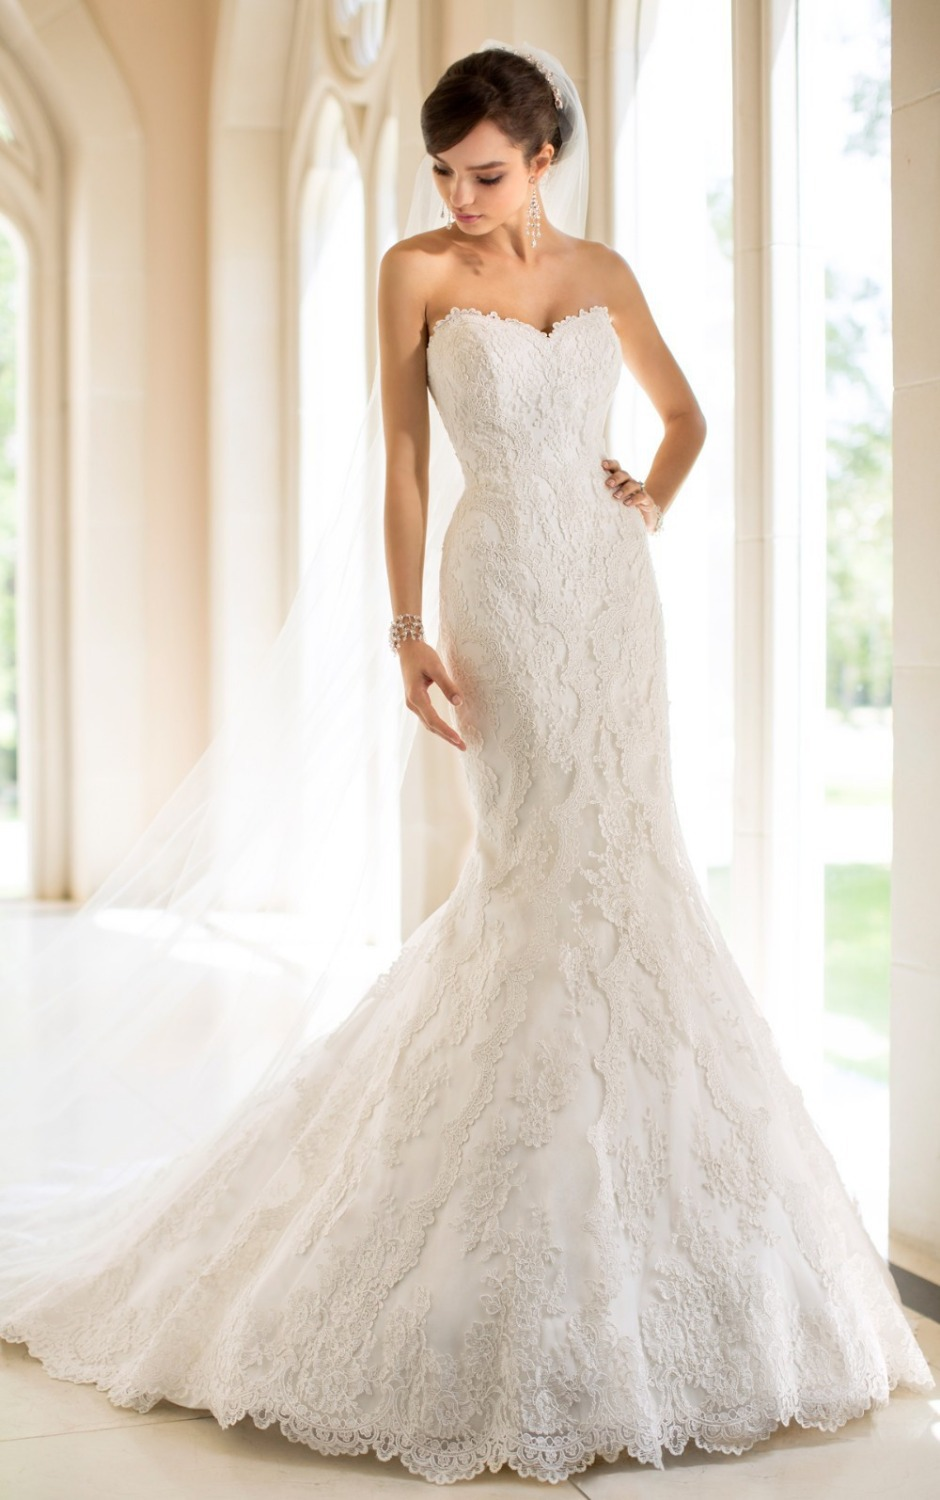 2015 New Style Off The Shoulder High Quality Lace Mermaid Wedding Dresses With Lace Up Back Professional Manufacturer F024